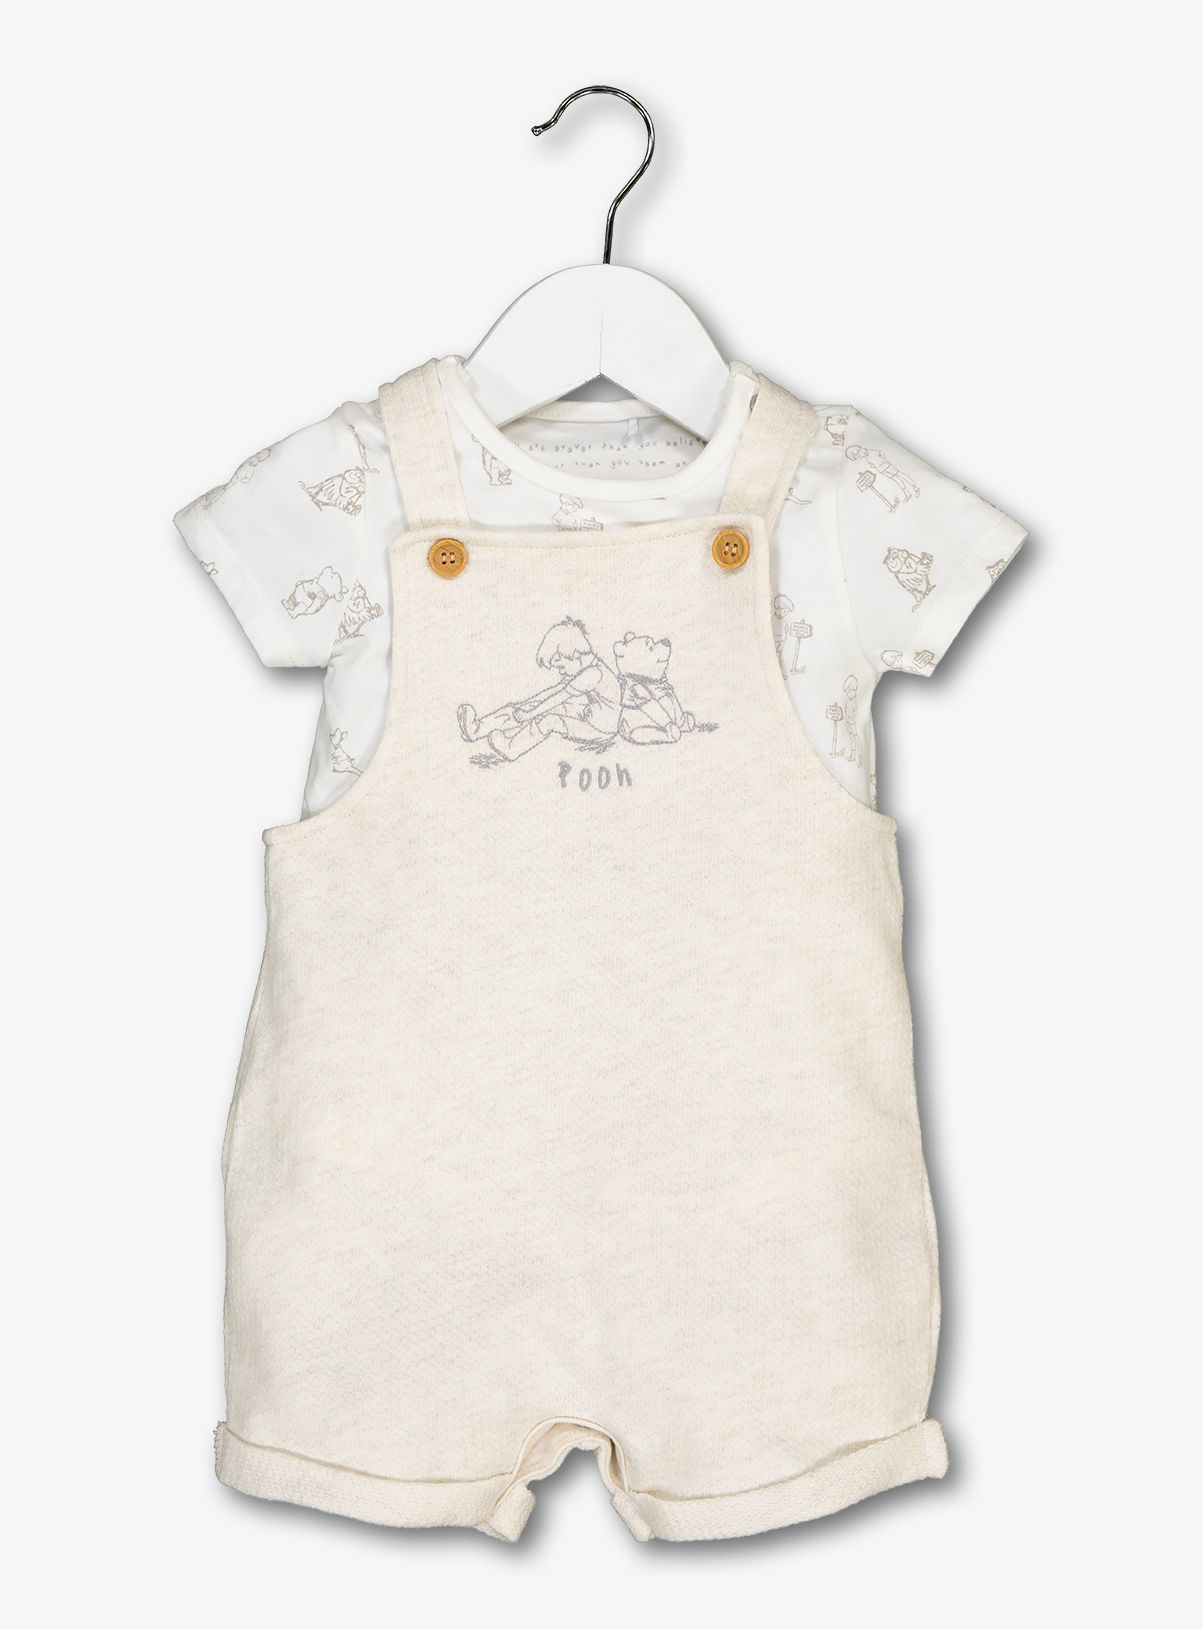 Tu GUESS HOW MUCH I LOVE YOU Baby Boys 3-Piece Outfit Set Clothes 0-3 Months NEW